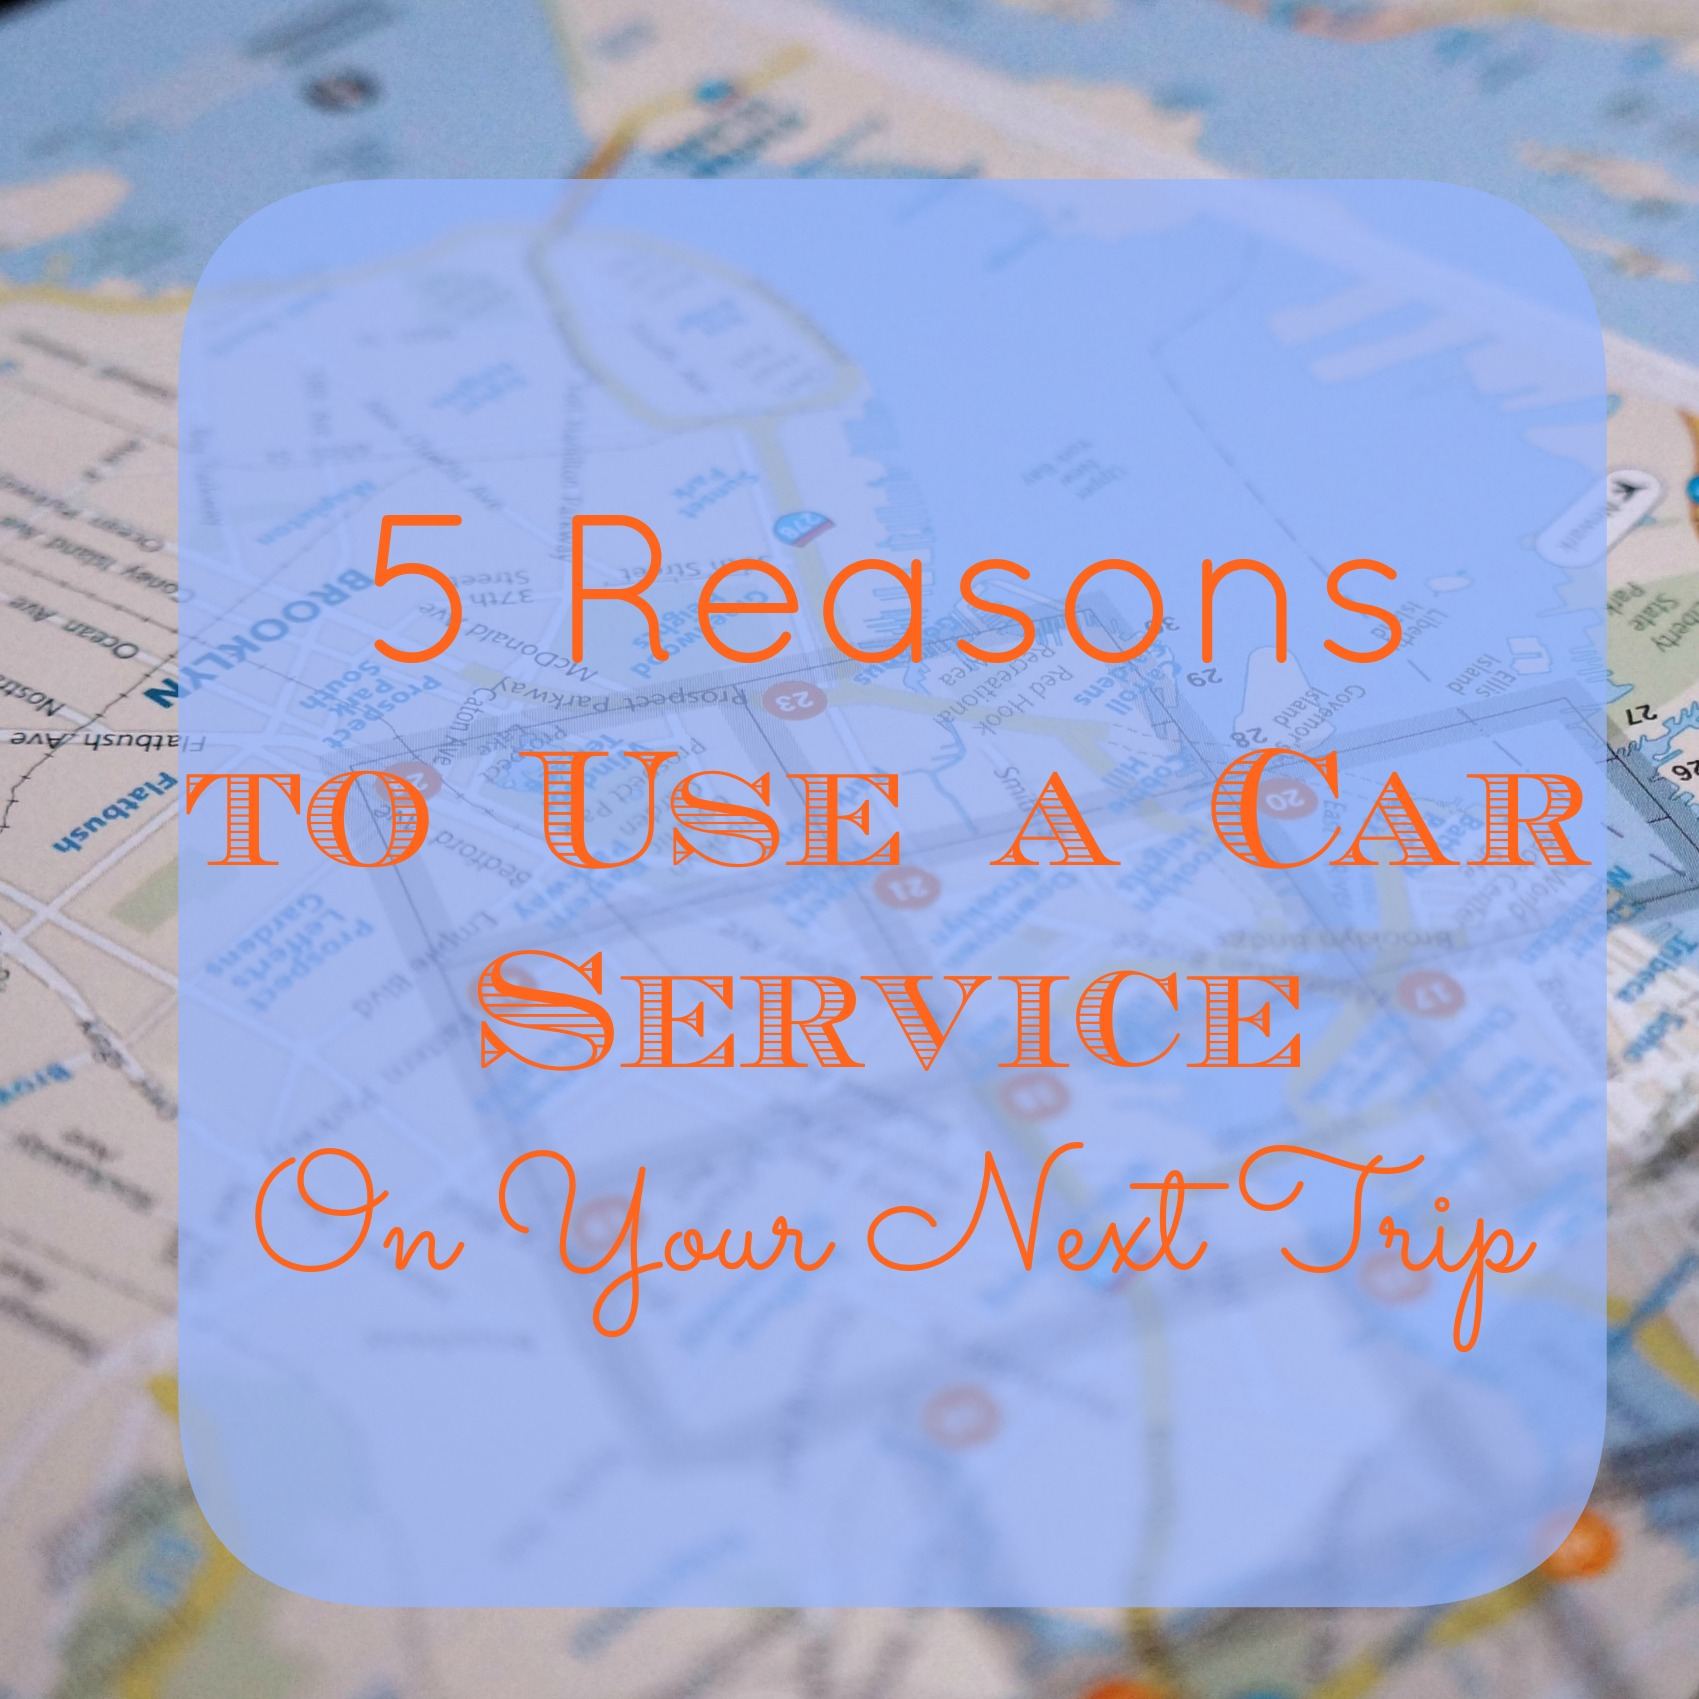 car service travel tips